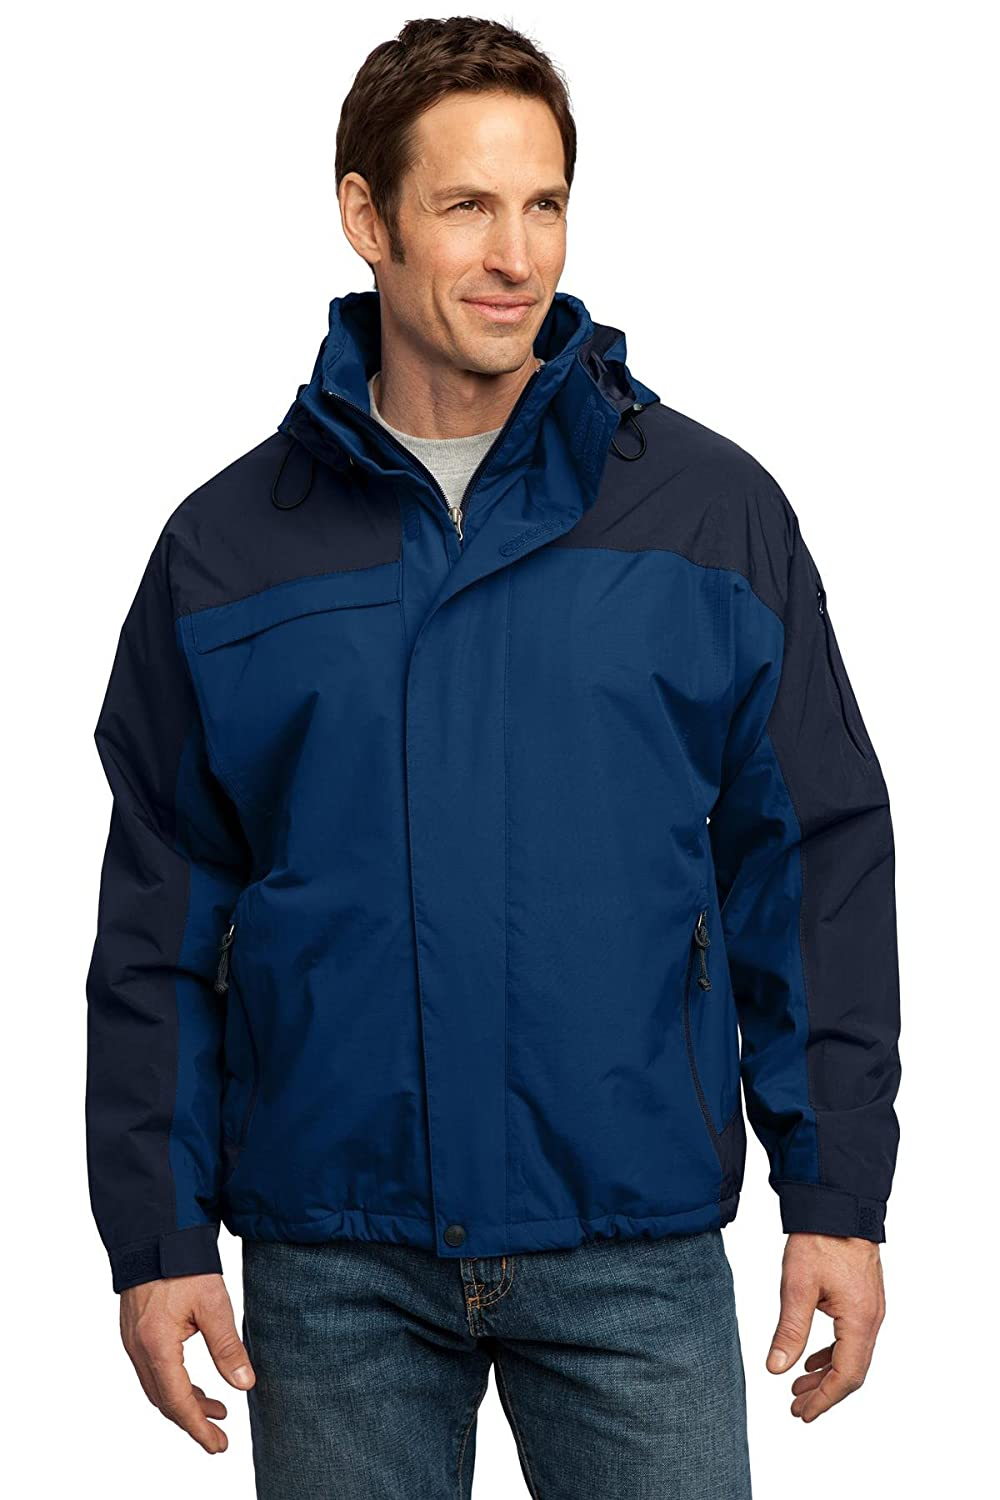 Port Authority Mens Nootka Jacket Nootka Jacket J792-Men/'s